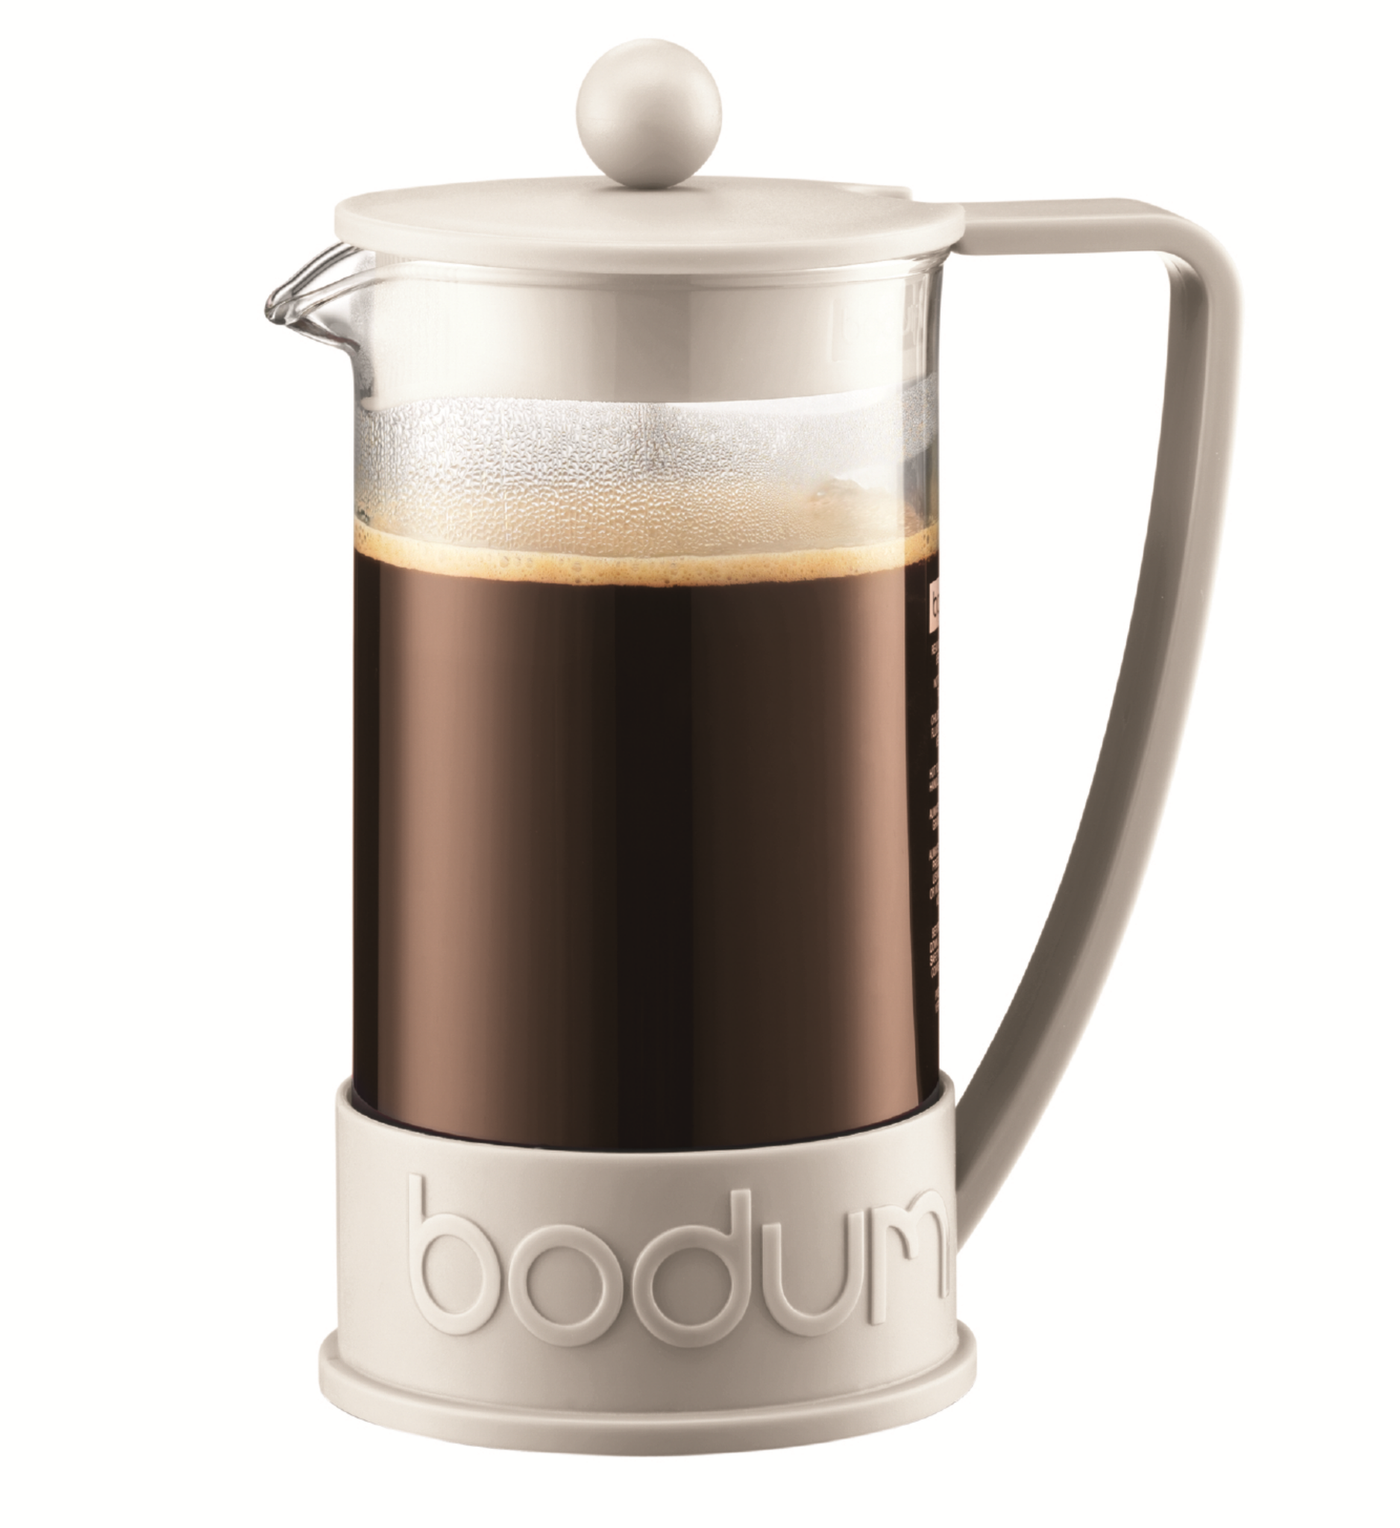 bodum brazil cafetiere coffee equipment. Black Bedroom Furniture Sets. Home Design Ideas